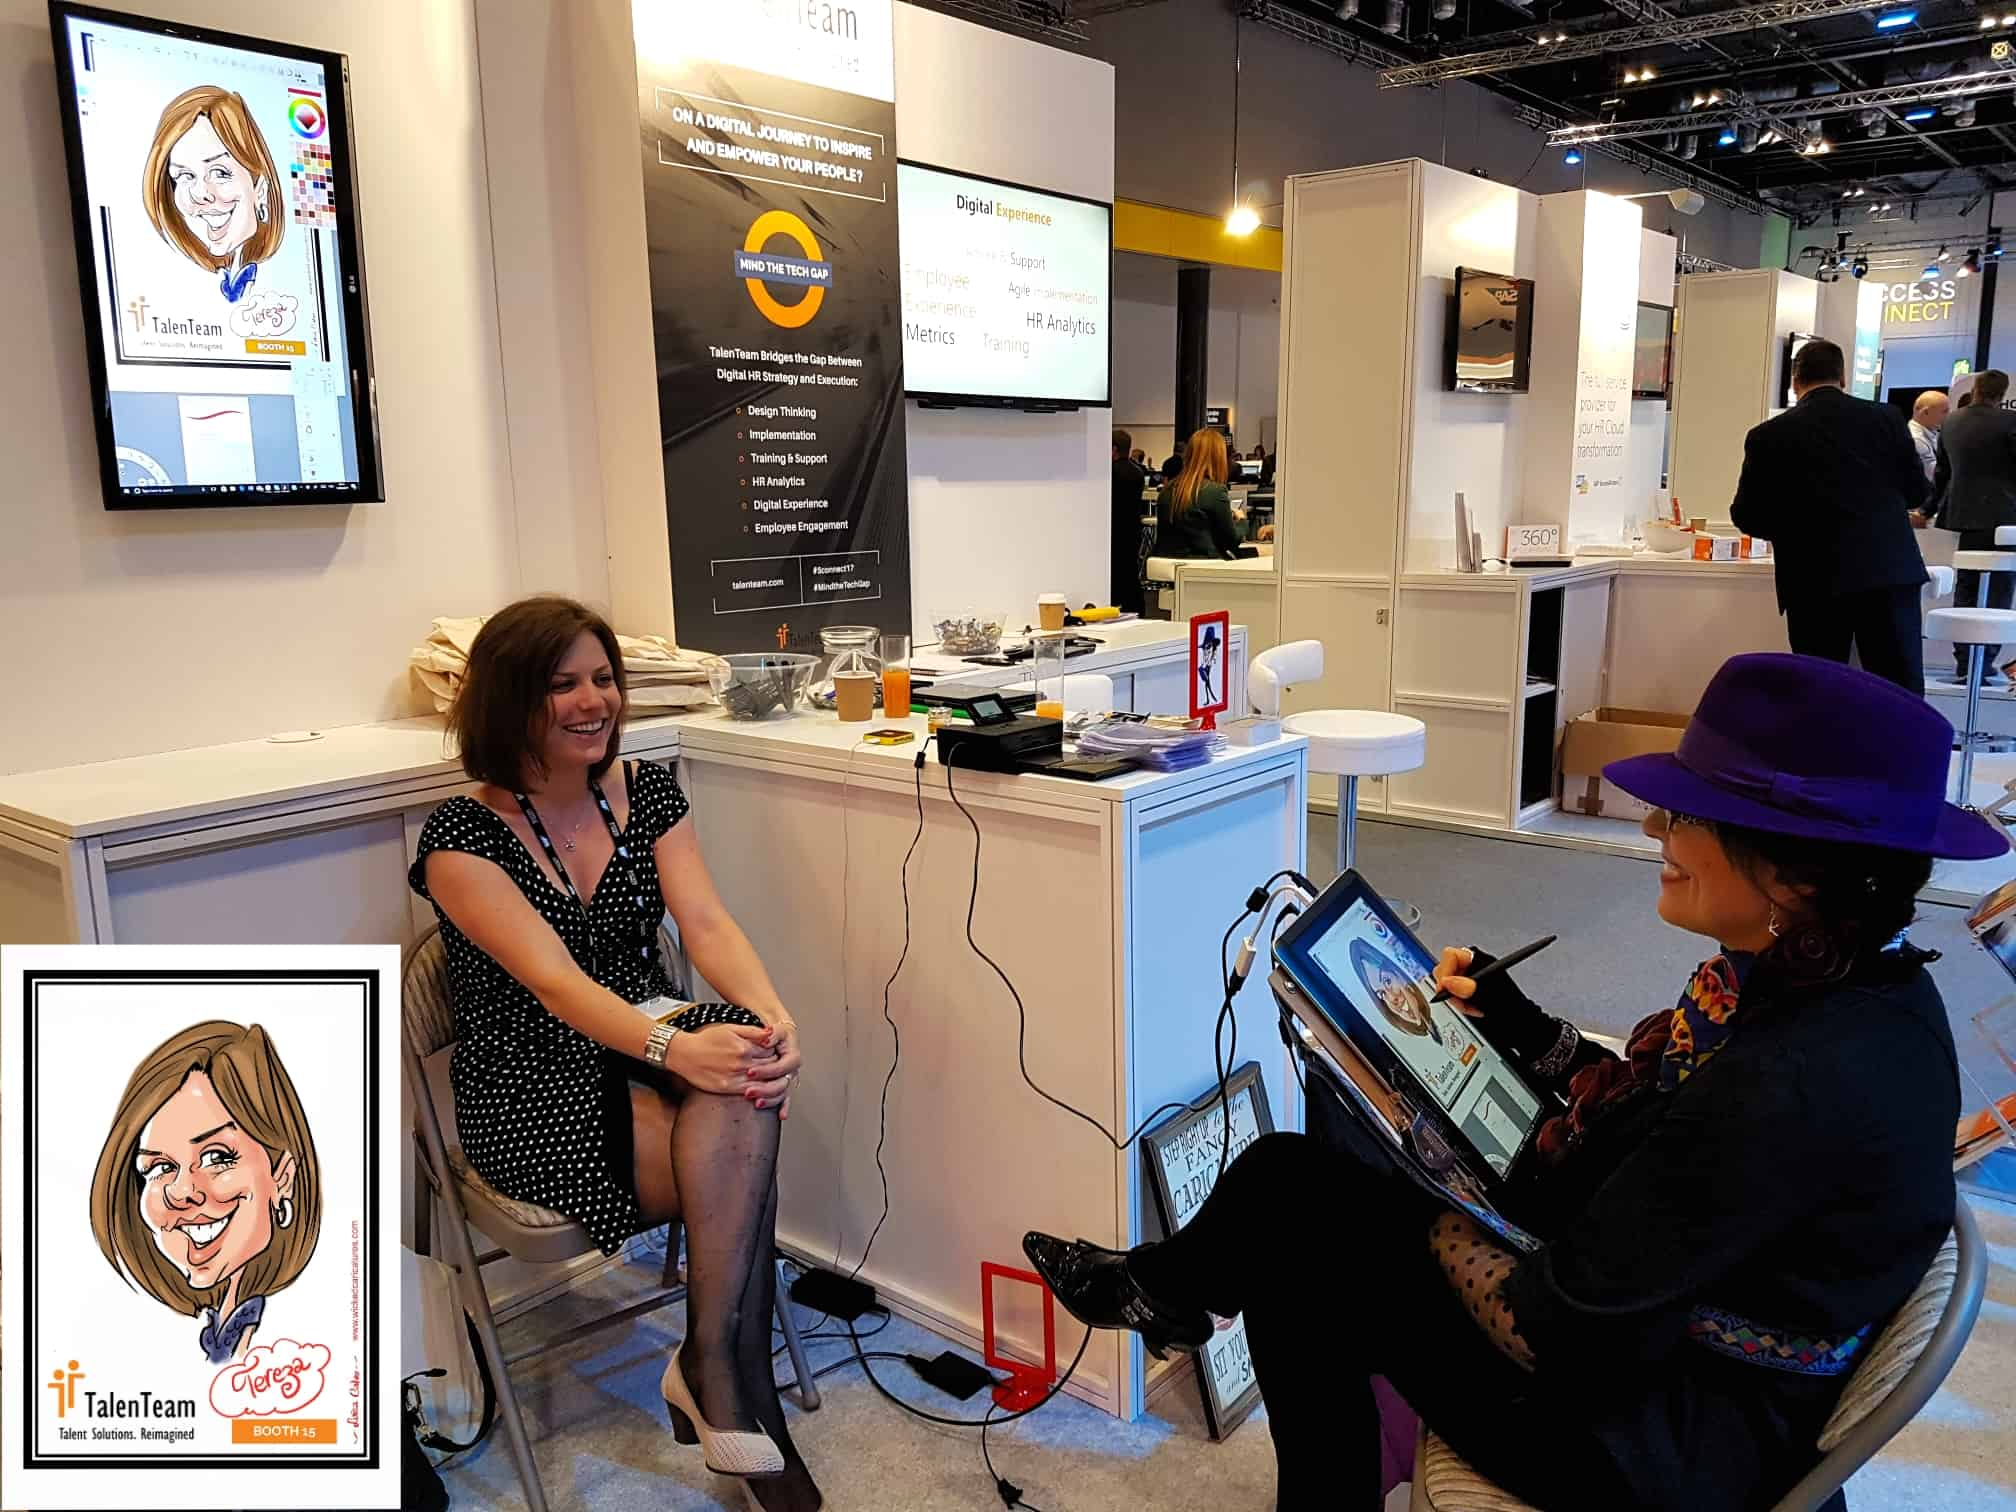 live digital caricatures on Talenteam booth by Luisa Calvo Wicked Caricatures.